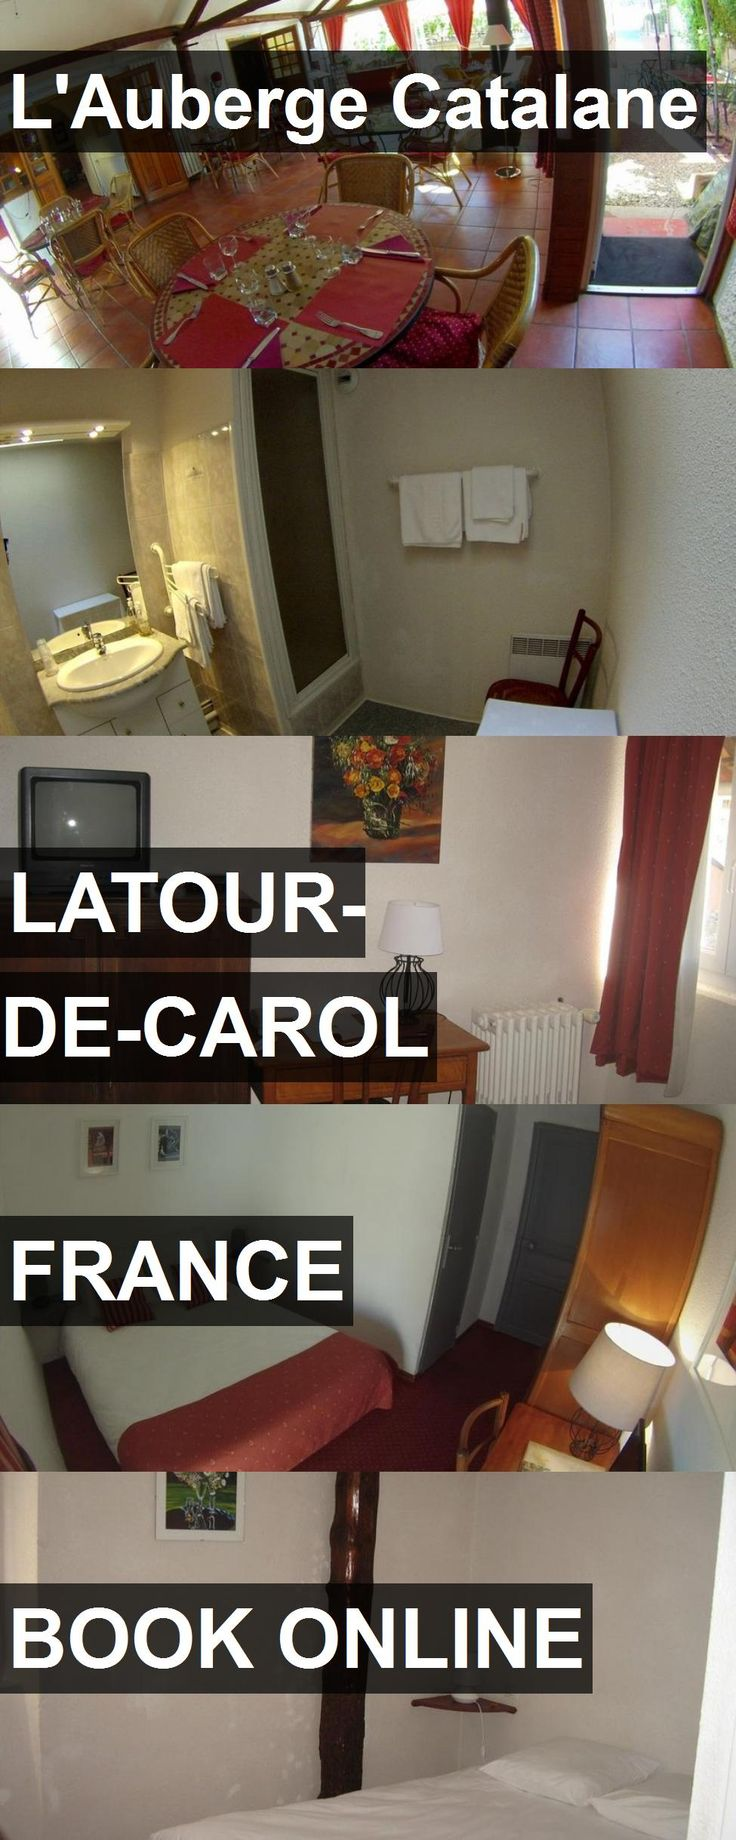 Hotel L'Auberge Catalane in Latour-de-Carol, France. For more information, photos, reviews and best prices please follow the link. #France #Latour-de-Carol #travel #vacation #hotel